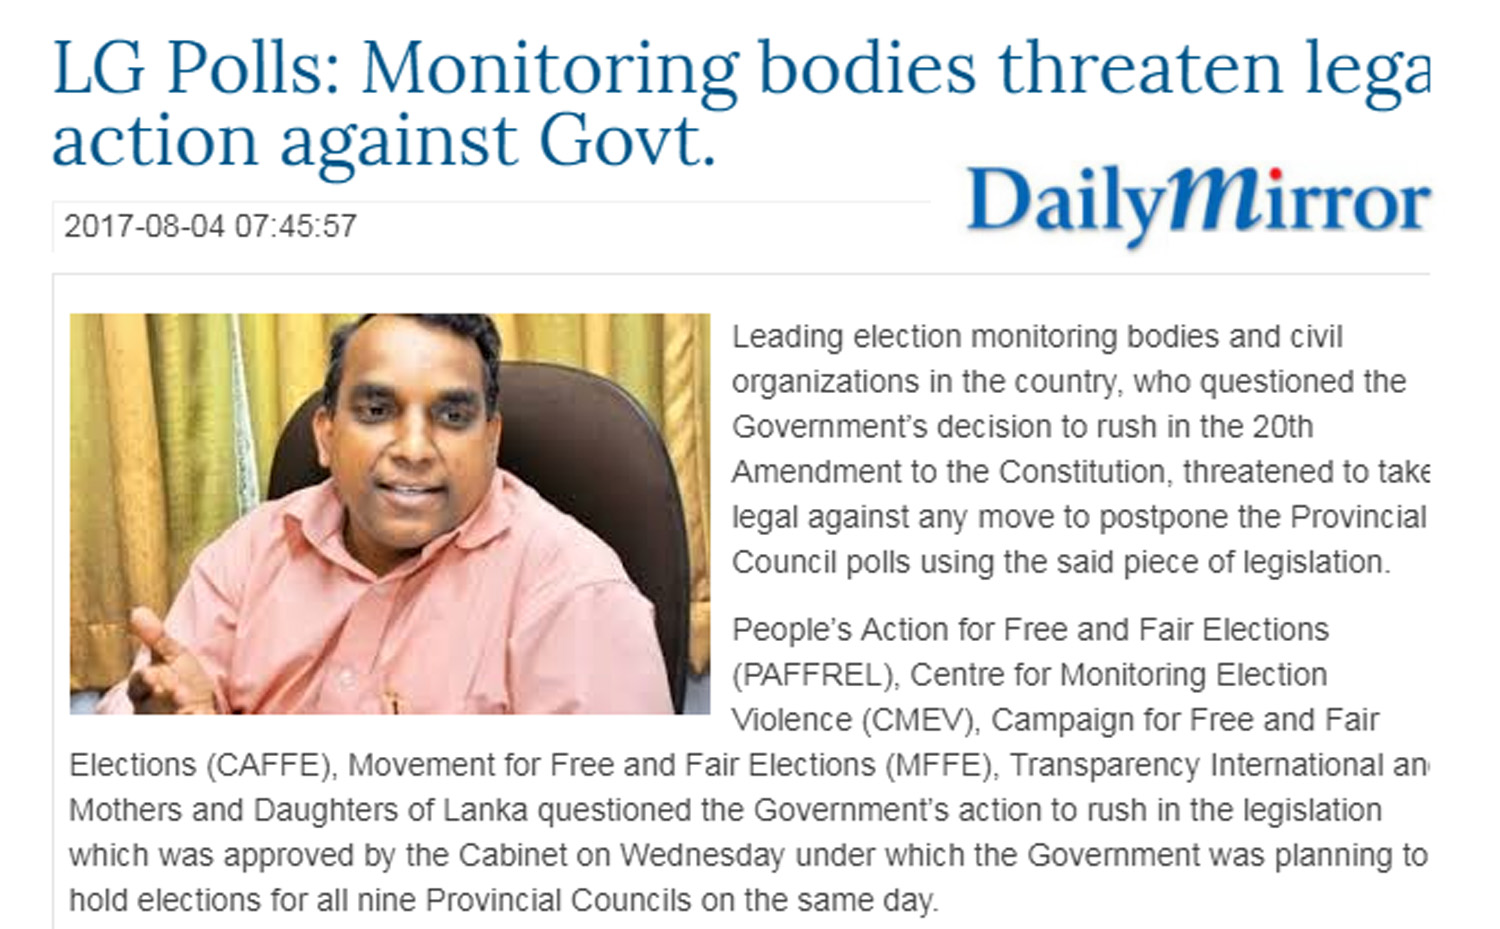 LG Polls: Monitoring bodies threaten legal action against Govt.